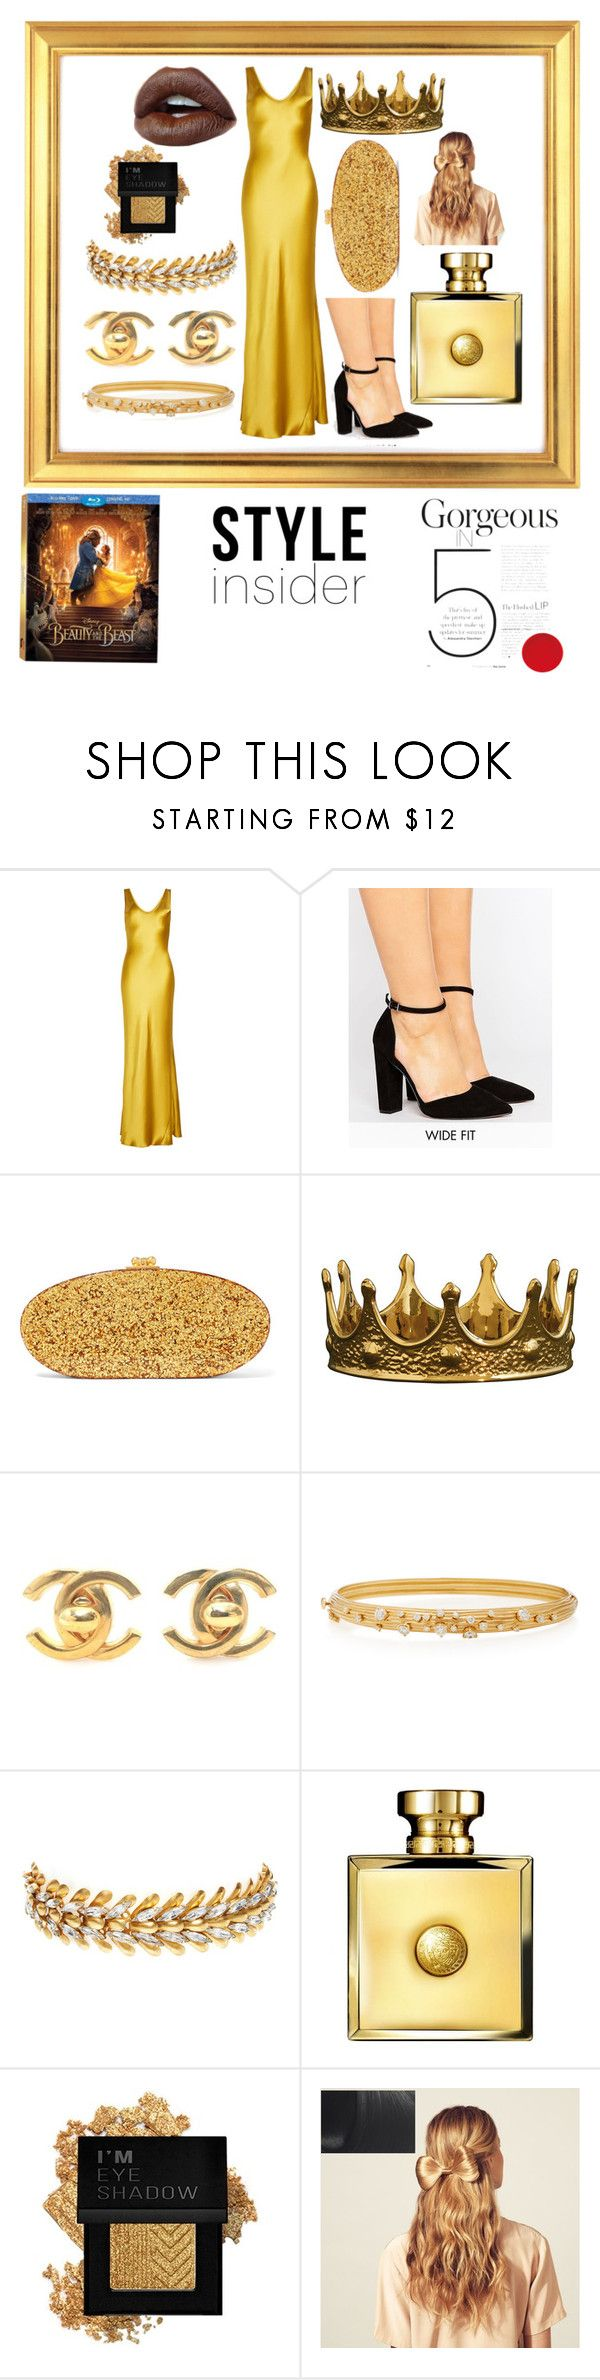 """""""Gorgeous In 5"""" by kabriadarshay ❤ liked on Polyvore featuring Disney, Galvan, ASOS, Edie Parker, Seletti, Chanel, Hueb, Elizabeth Cole, Versace and Forever 21"""